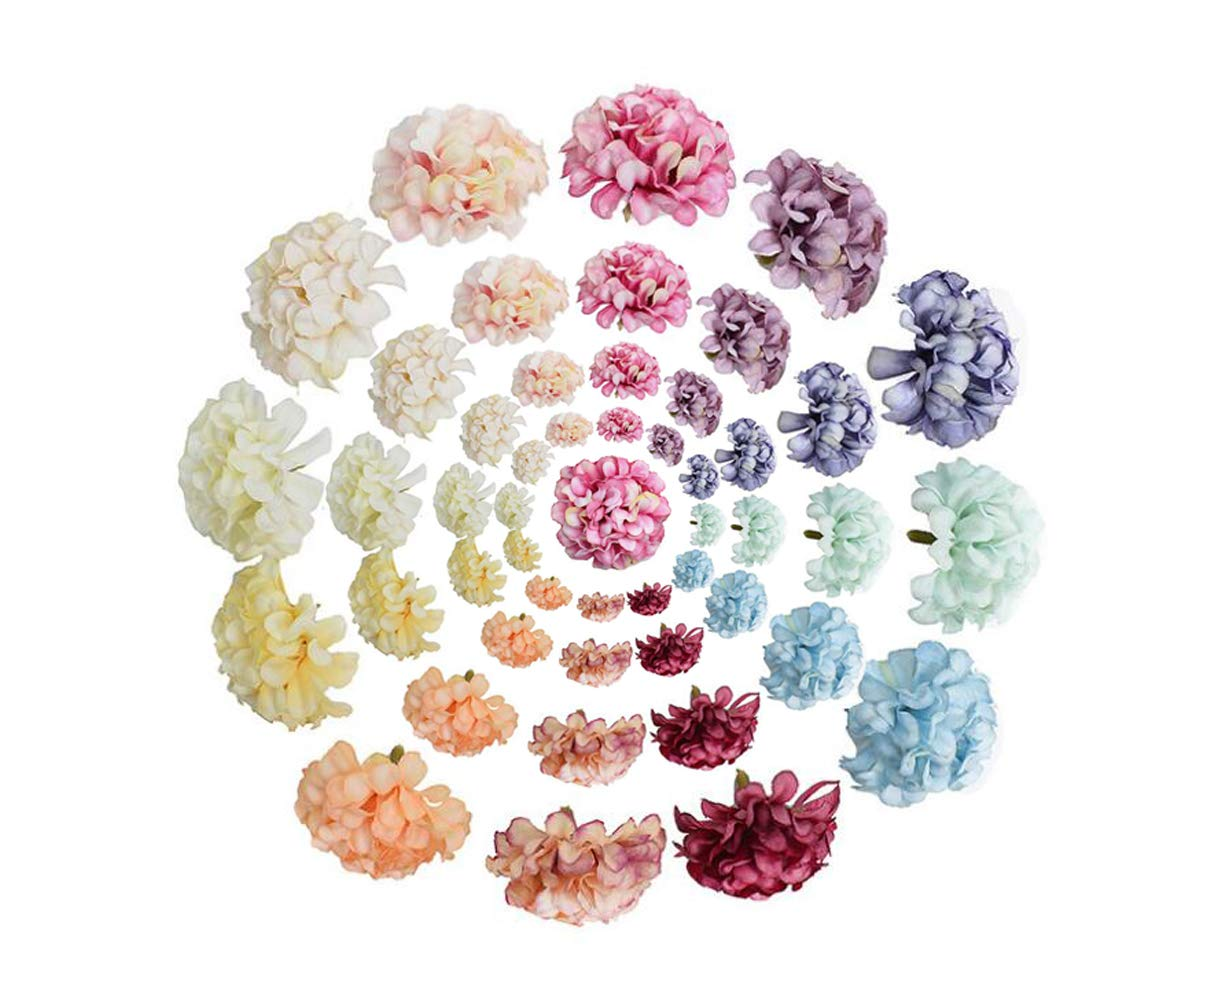 SYBL 50 Packs Artificial Flowers Mini Fake Silk Hydrangea Heads Without Stem Bulk Decor Accessories for Wedding Party…